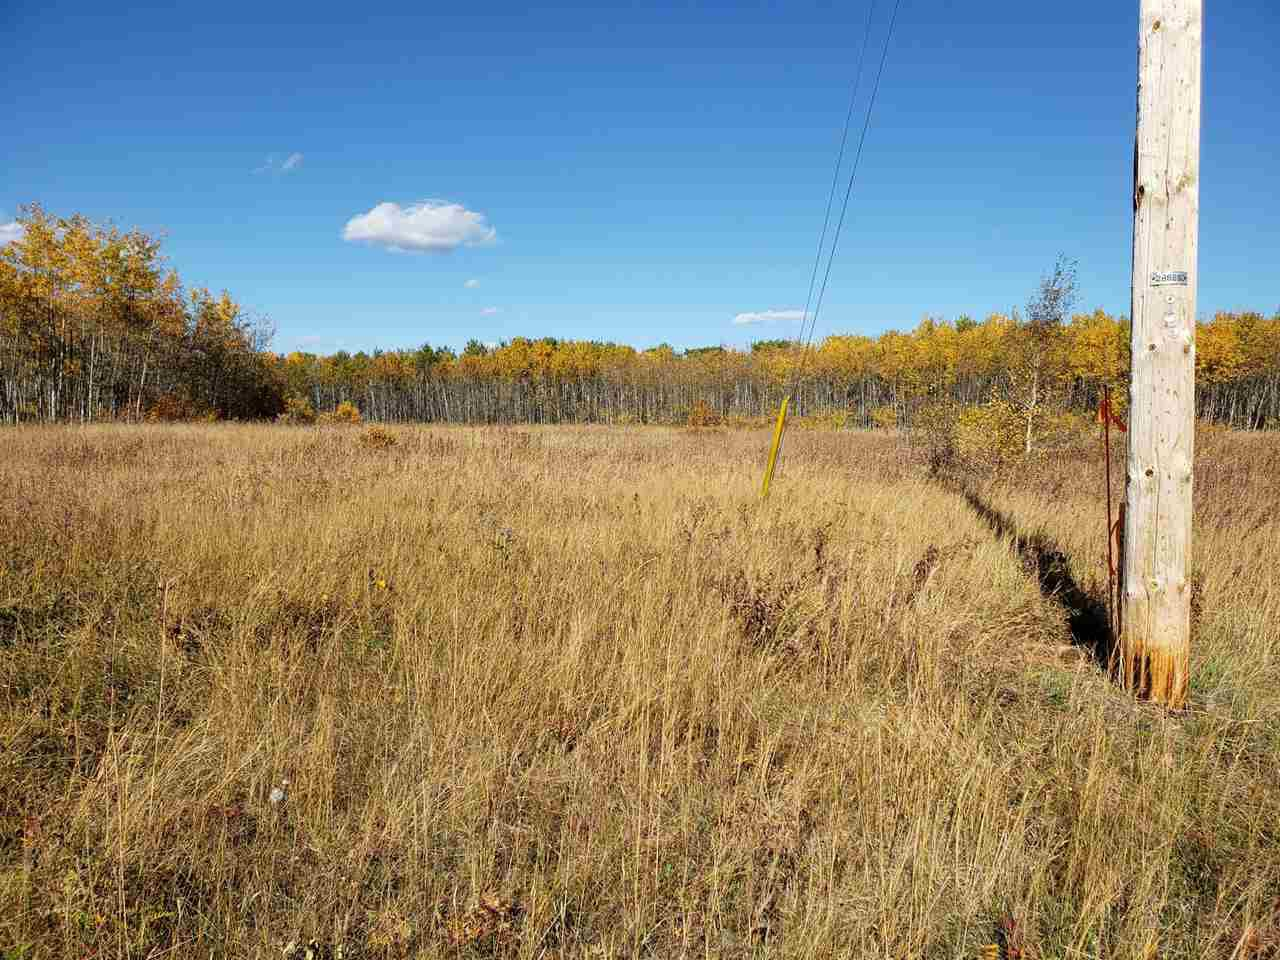 Main Photo: 120 56514 Rg Rd 60: Rural St. Paul County Rural Land/Vacant Lot for sale : MLS®# E4219967